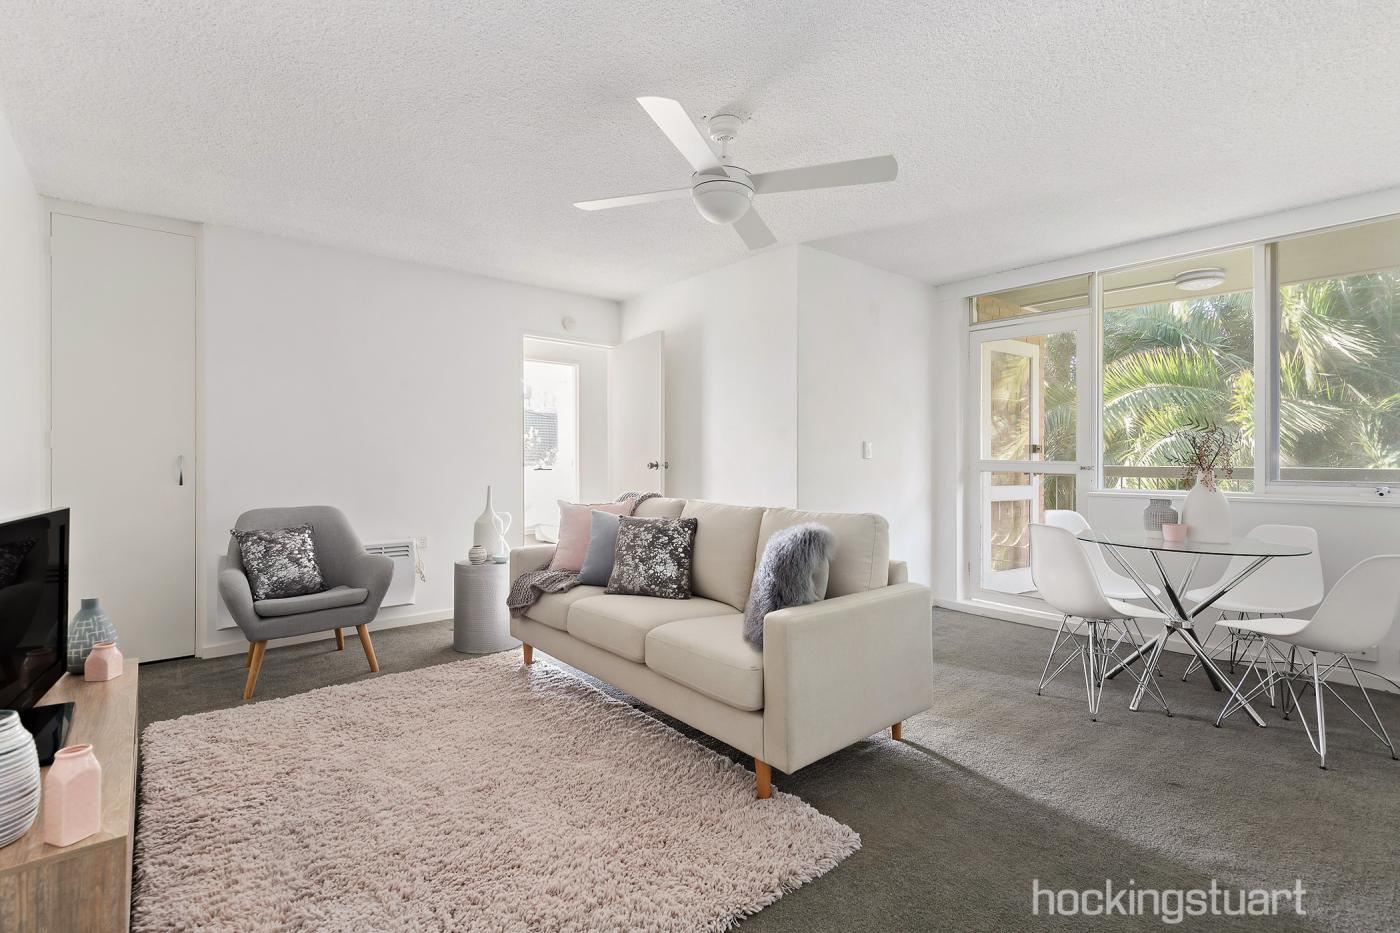 19-dalgety-street-st-kilda-vic-3182-real-estate-photo-1-xlarge-12001740